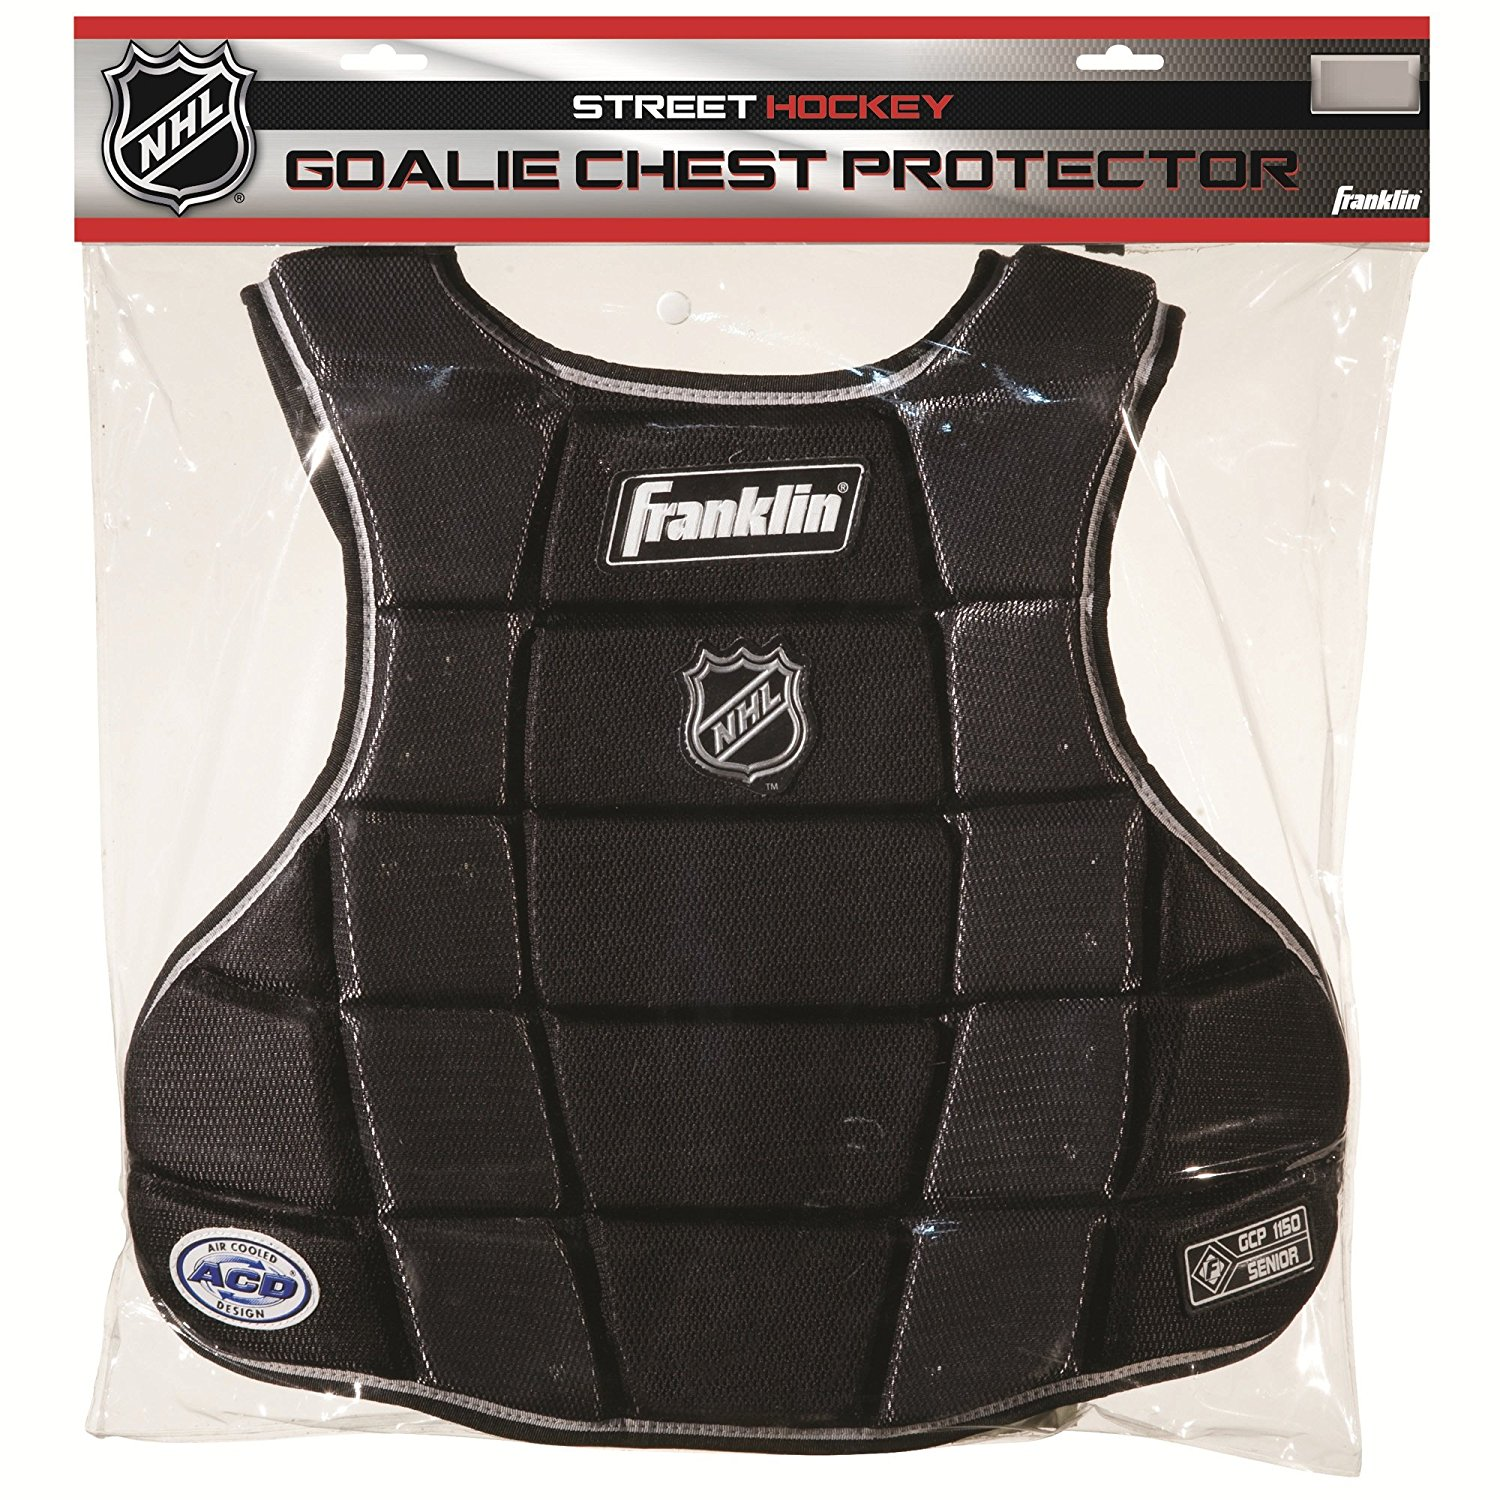 NHL SX Pro GCP 1150 Goalie Chest Protector, Senior, National Hockey League License By Franklin Sports by